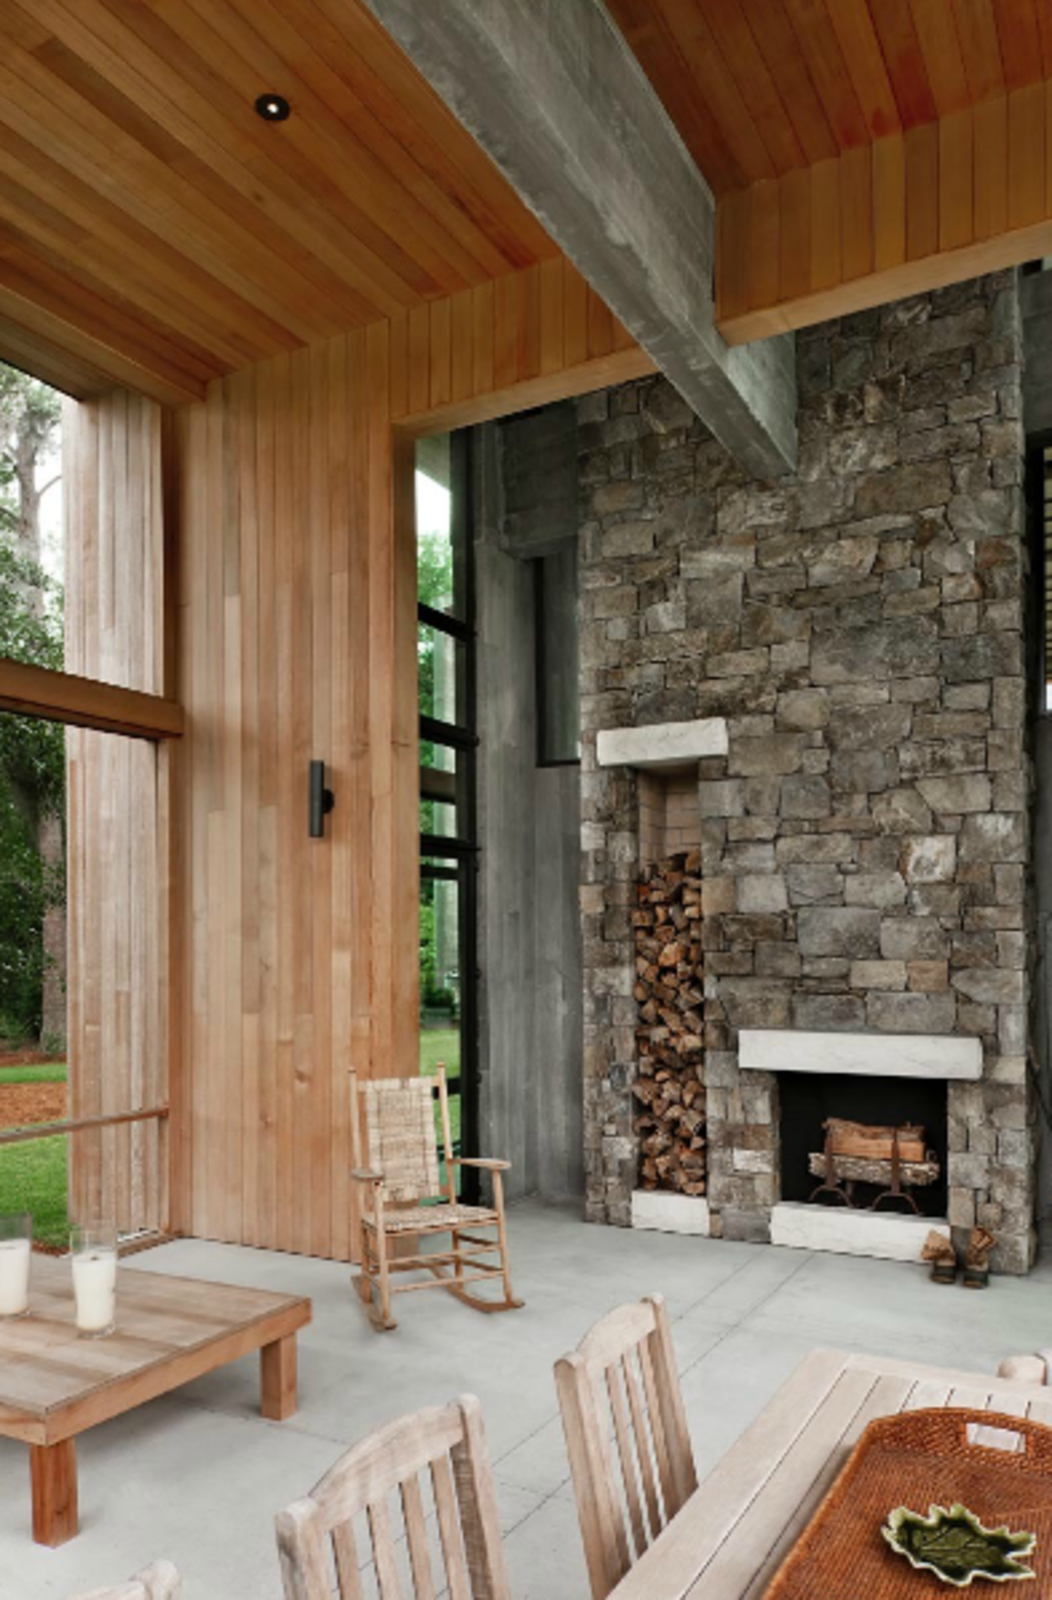 Choate selected maintenance-free materials for the project wherever possible, including the stone on this fireplace, which includes built-in storage for firewood. The stone extends 25 feet up to the wood-clad ceiling, emphasizing the home's grand scale.  97+ Modern Fireplace Ideas by Dwell from A Modern Home in a South Carolina Marsh